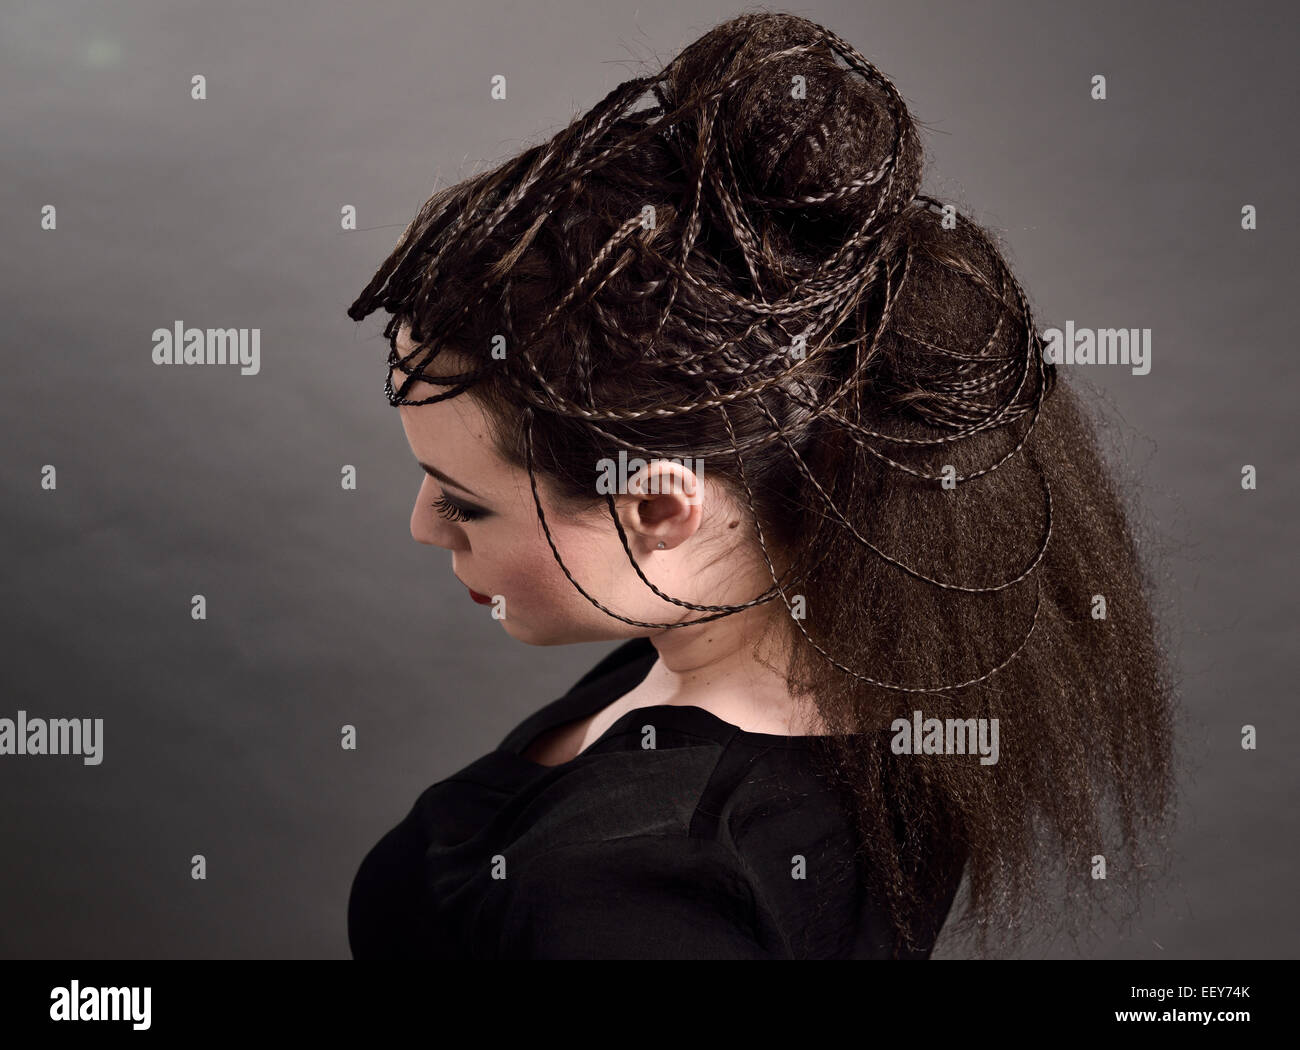 Head of young female model with a rope braided updo hairstyle with crimped pony tail hair - Stock Image